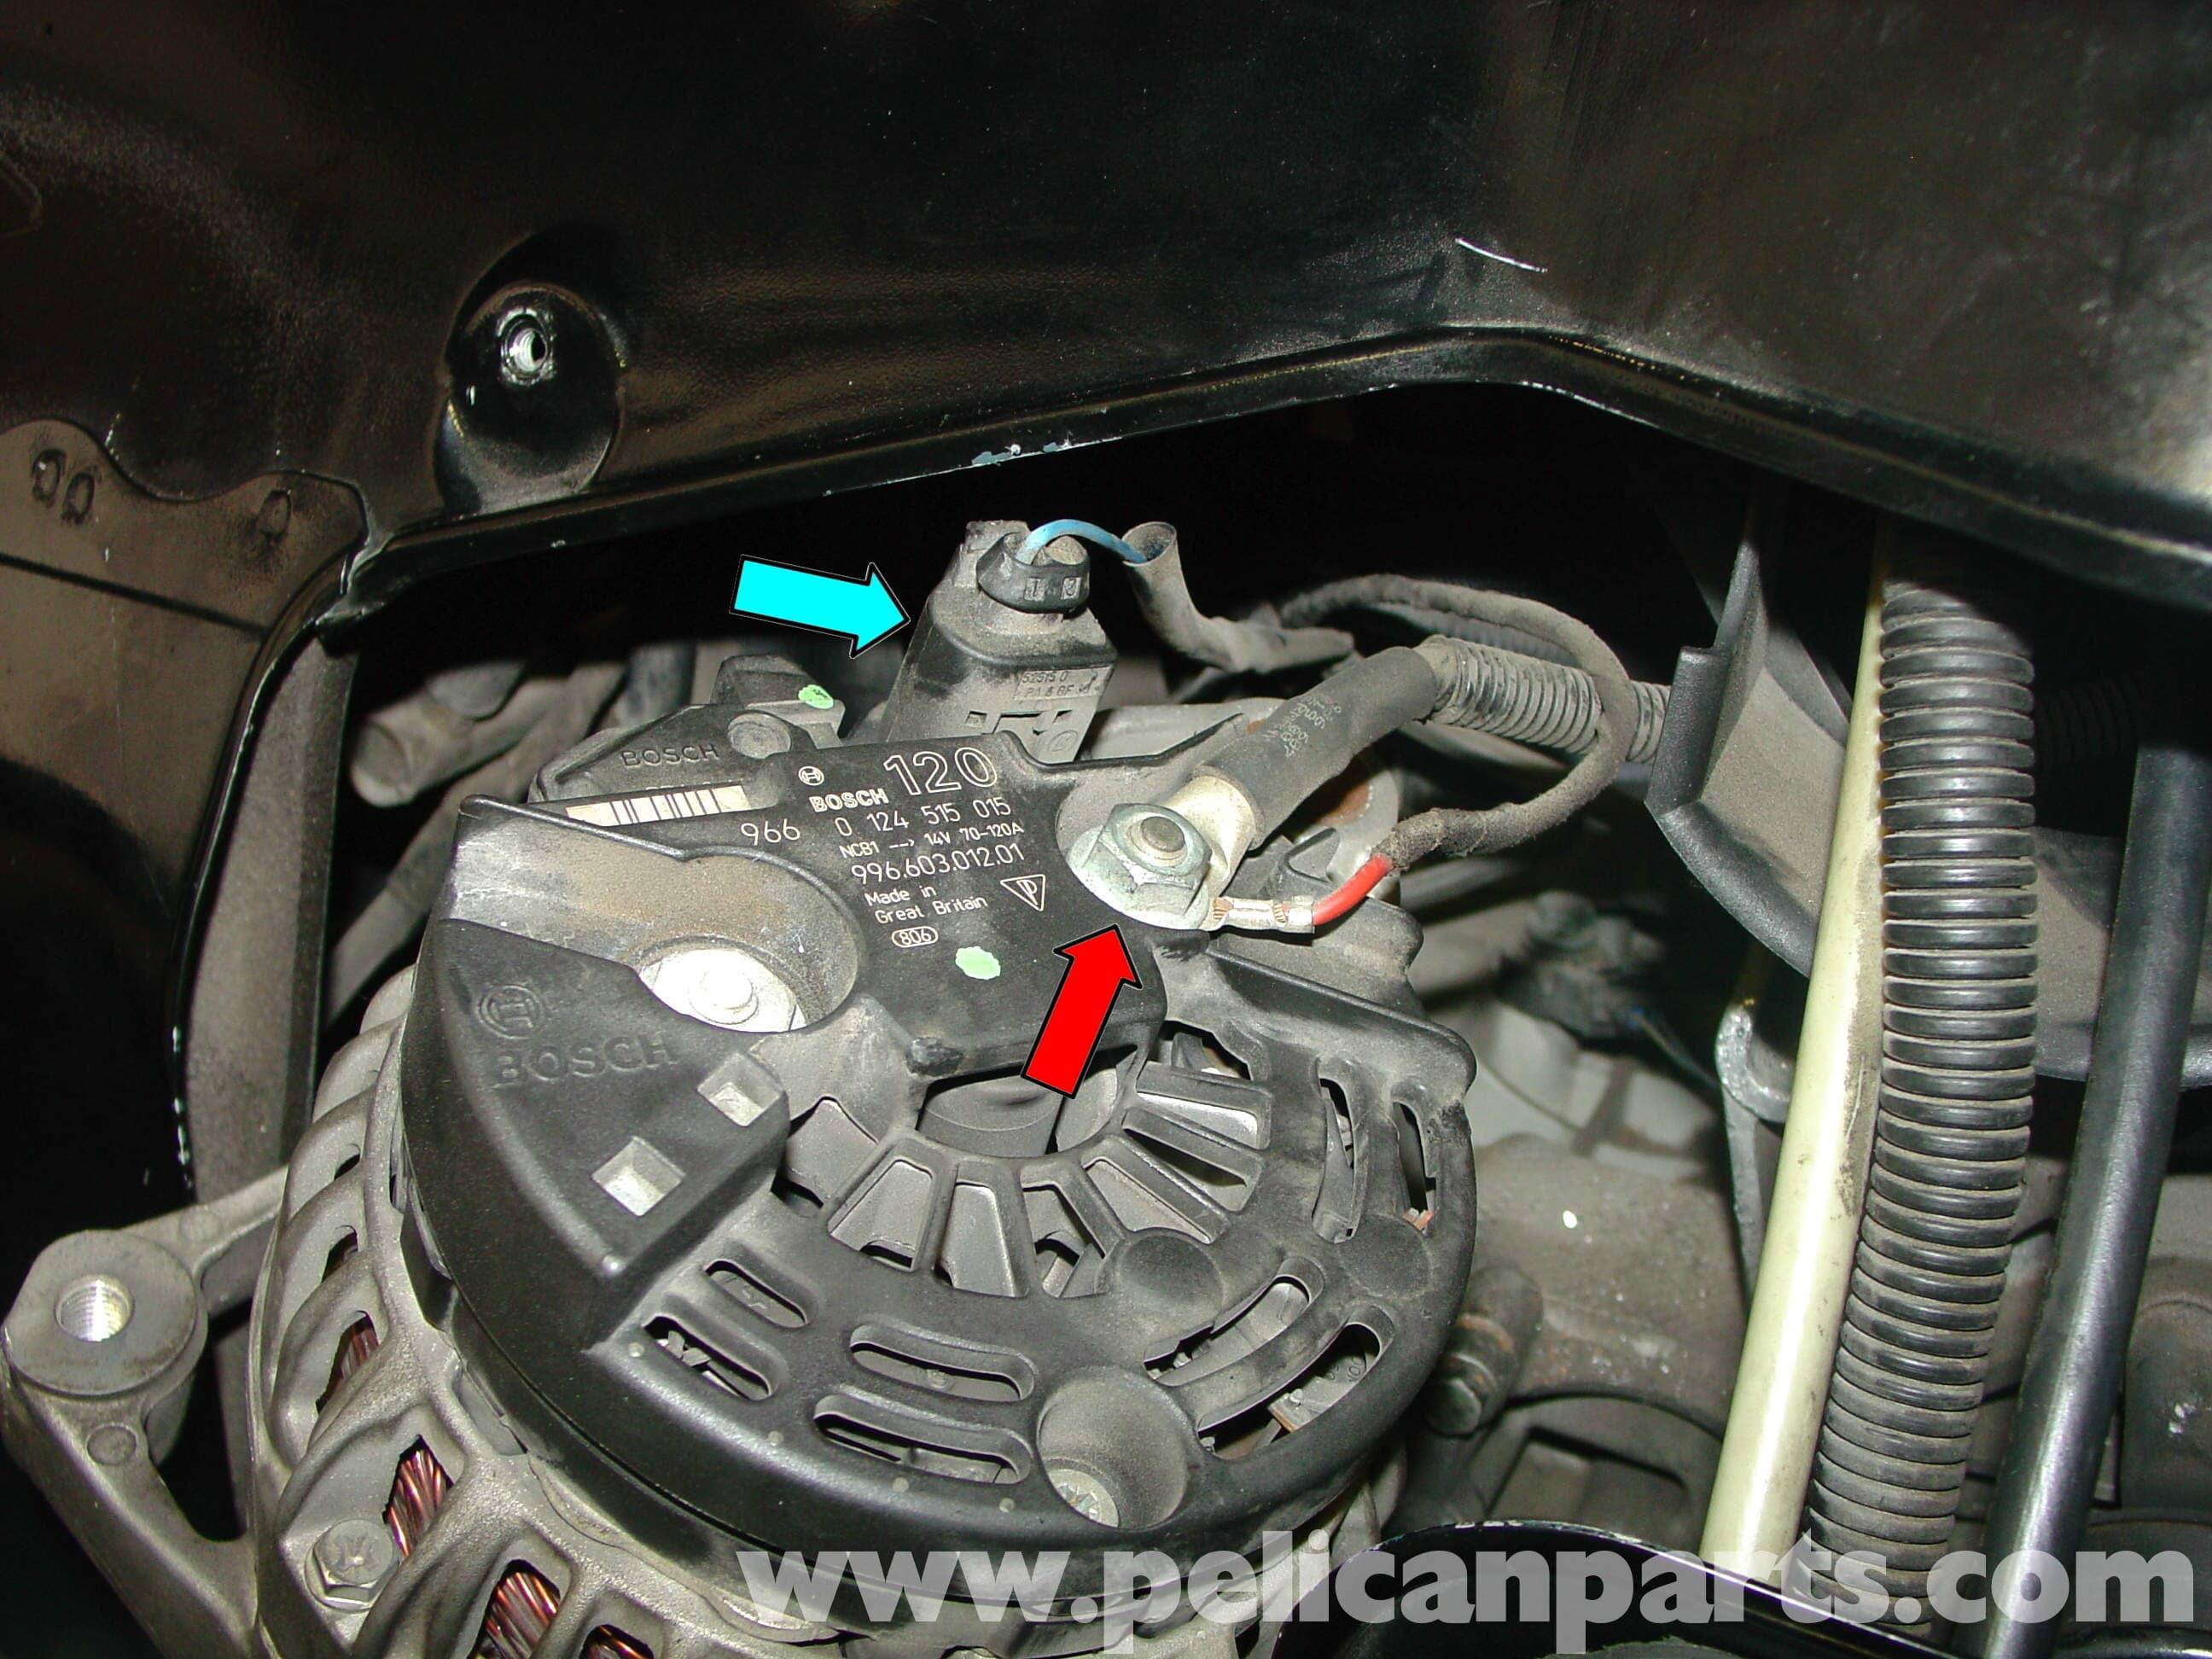 Pic5 porsche boxster alternator replacement 986 987 (1997 08 Alternator Adapter Harness at reclaimingppi.co